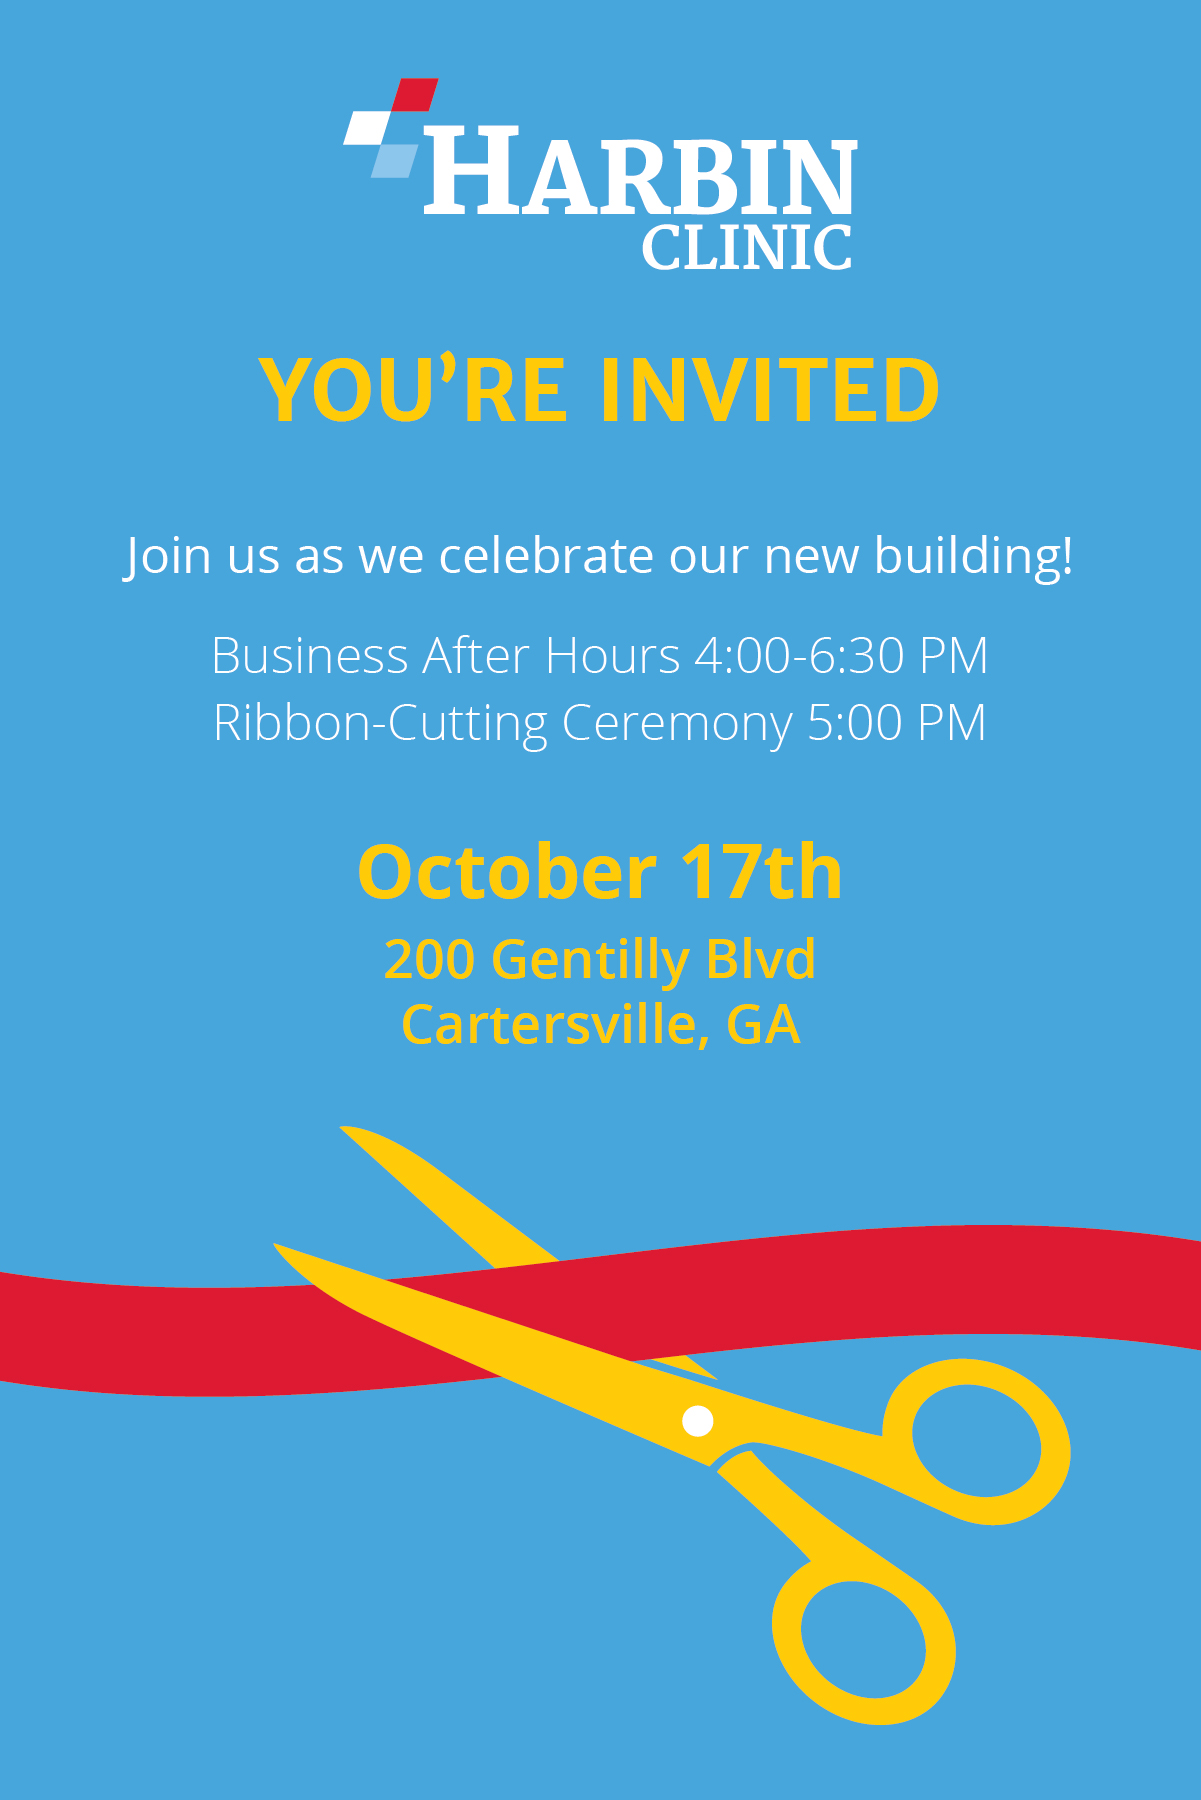 Harbin Clinic - You're Invited: Join us as we celebrate our new building! Business After Hours 4:00-6:30 PM, Ribbon-Cutting Ceremony 5:00 PM. October 17th at 200 Gentilly Blvd, Cartersville, GA